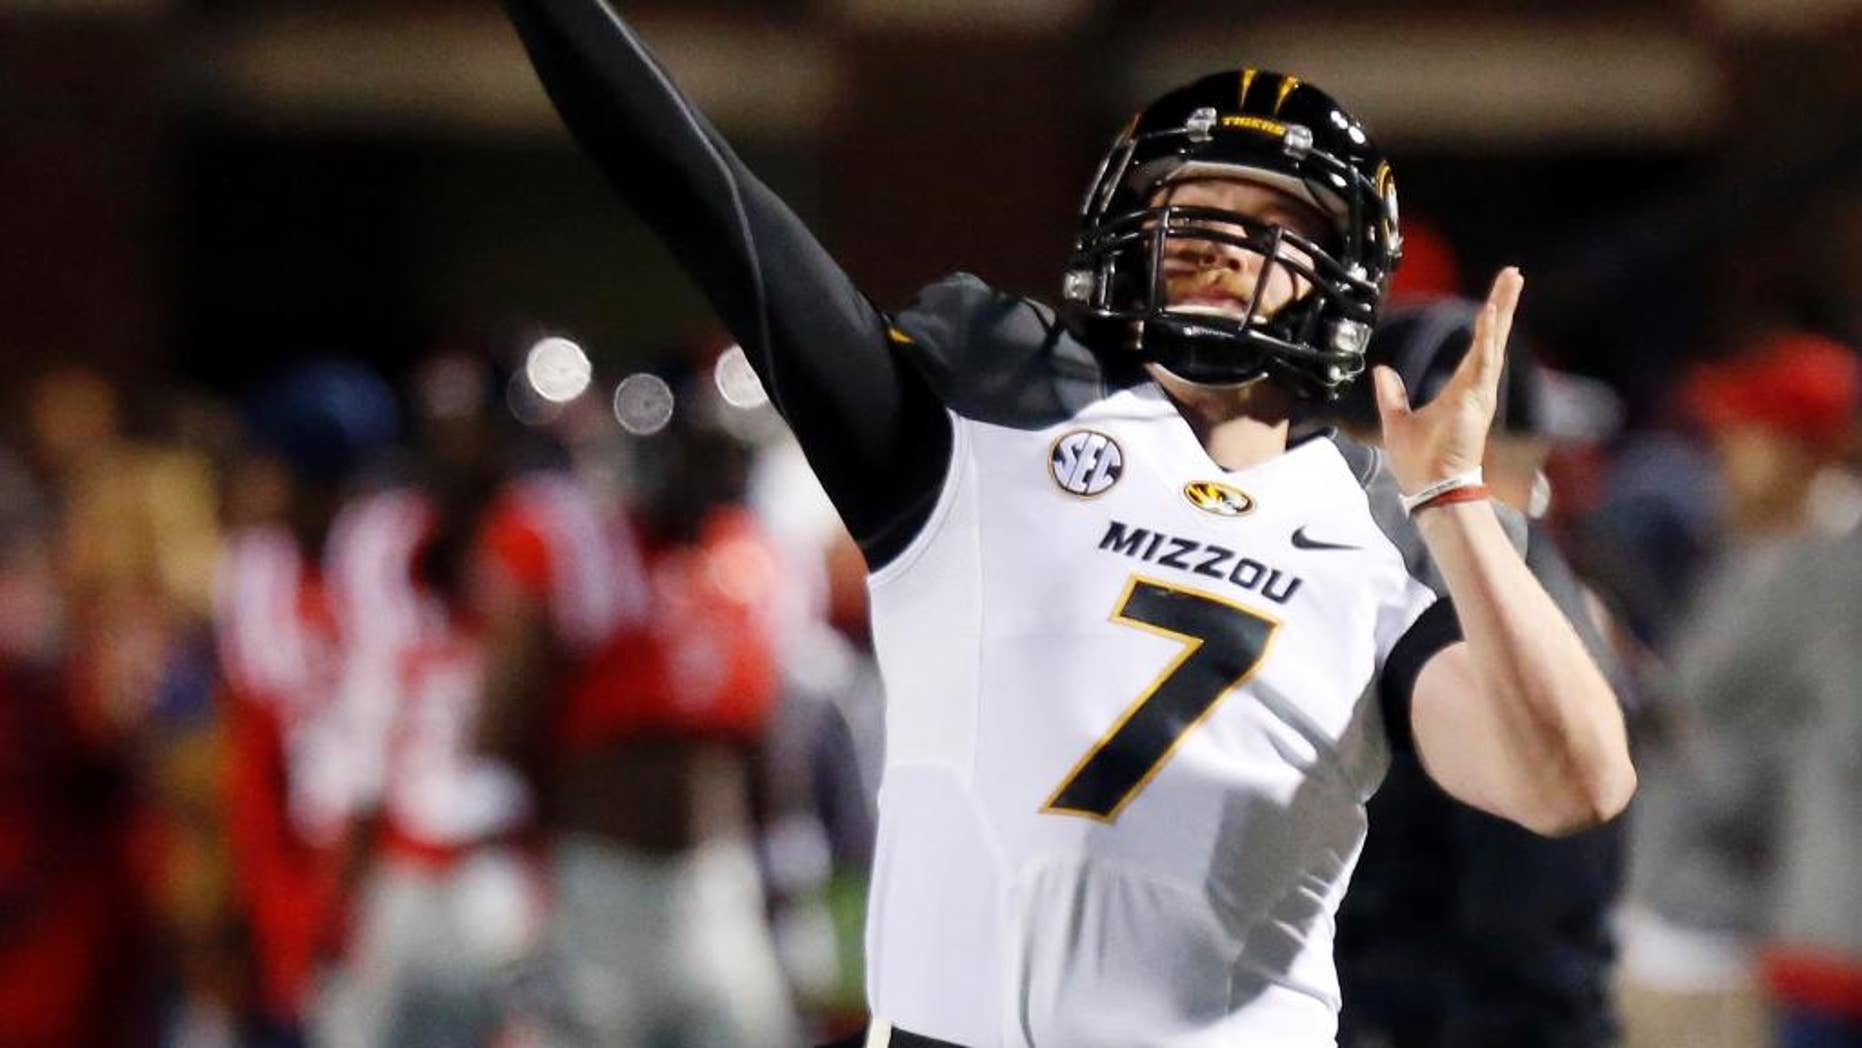 FILE - In this Nov. 23, 2013, file photo, Missouri quarterback Maty Mauk (7) throws downfield to a receiver during pregame drills before their NCAA college football game against Mississippi, in Oxford, Miss. Mauk is one of the SEC's new starting quarterbacks.  (AP Photo/Rogelio V. Solis, File)